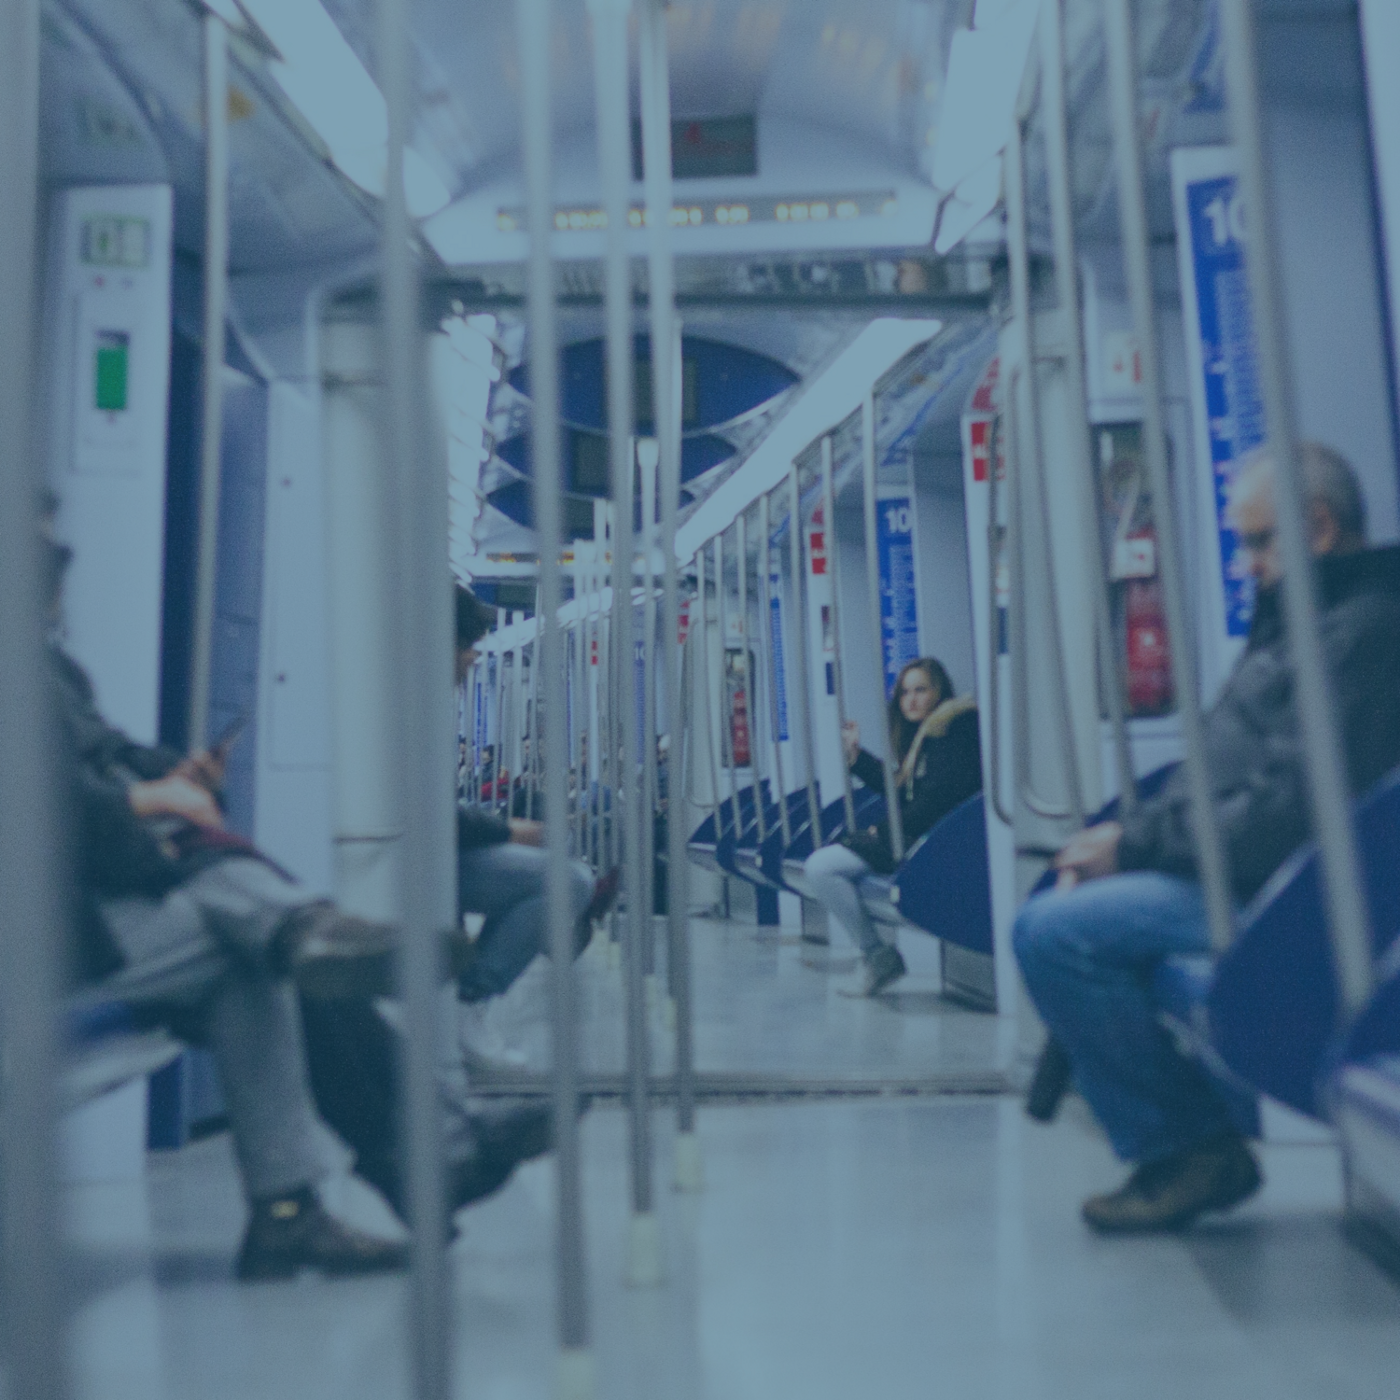 image shows the inside of a subway car, viewed down the length with a few passengers onboard